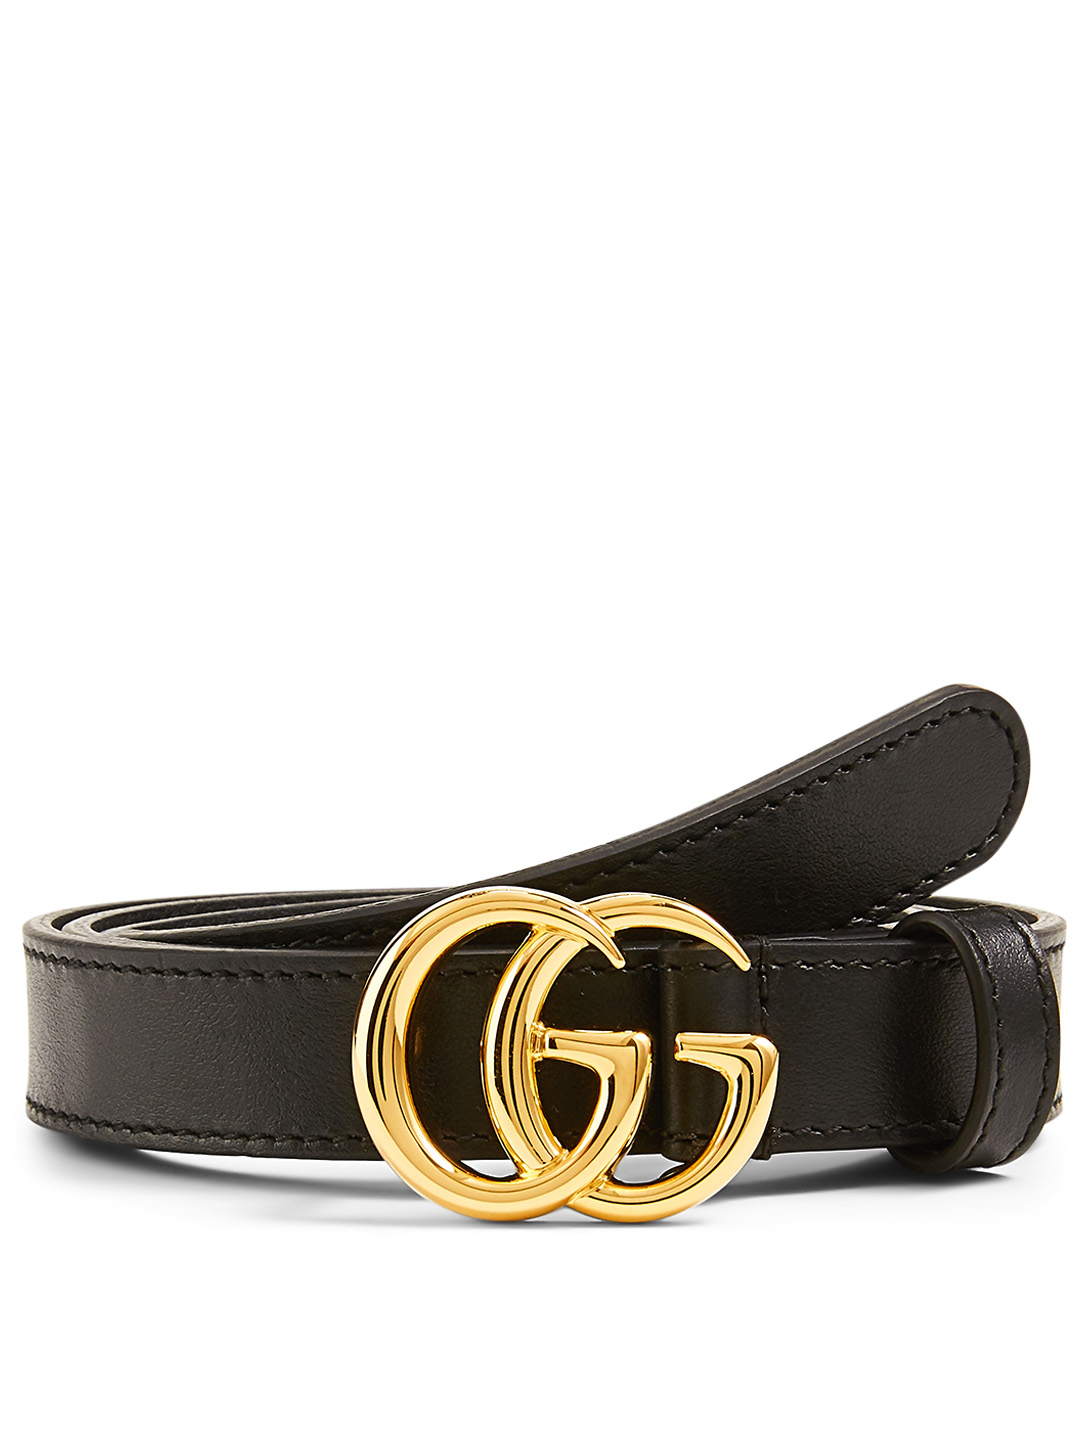 GUCCI GG Marmont Leather Belt Women's Black